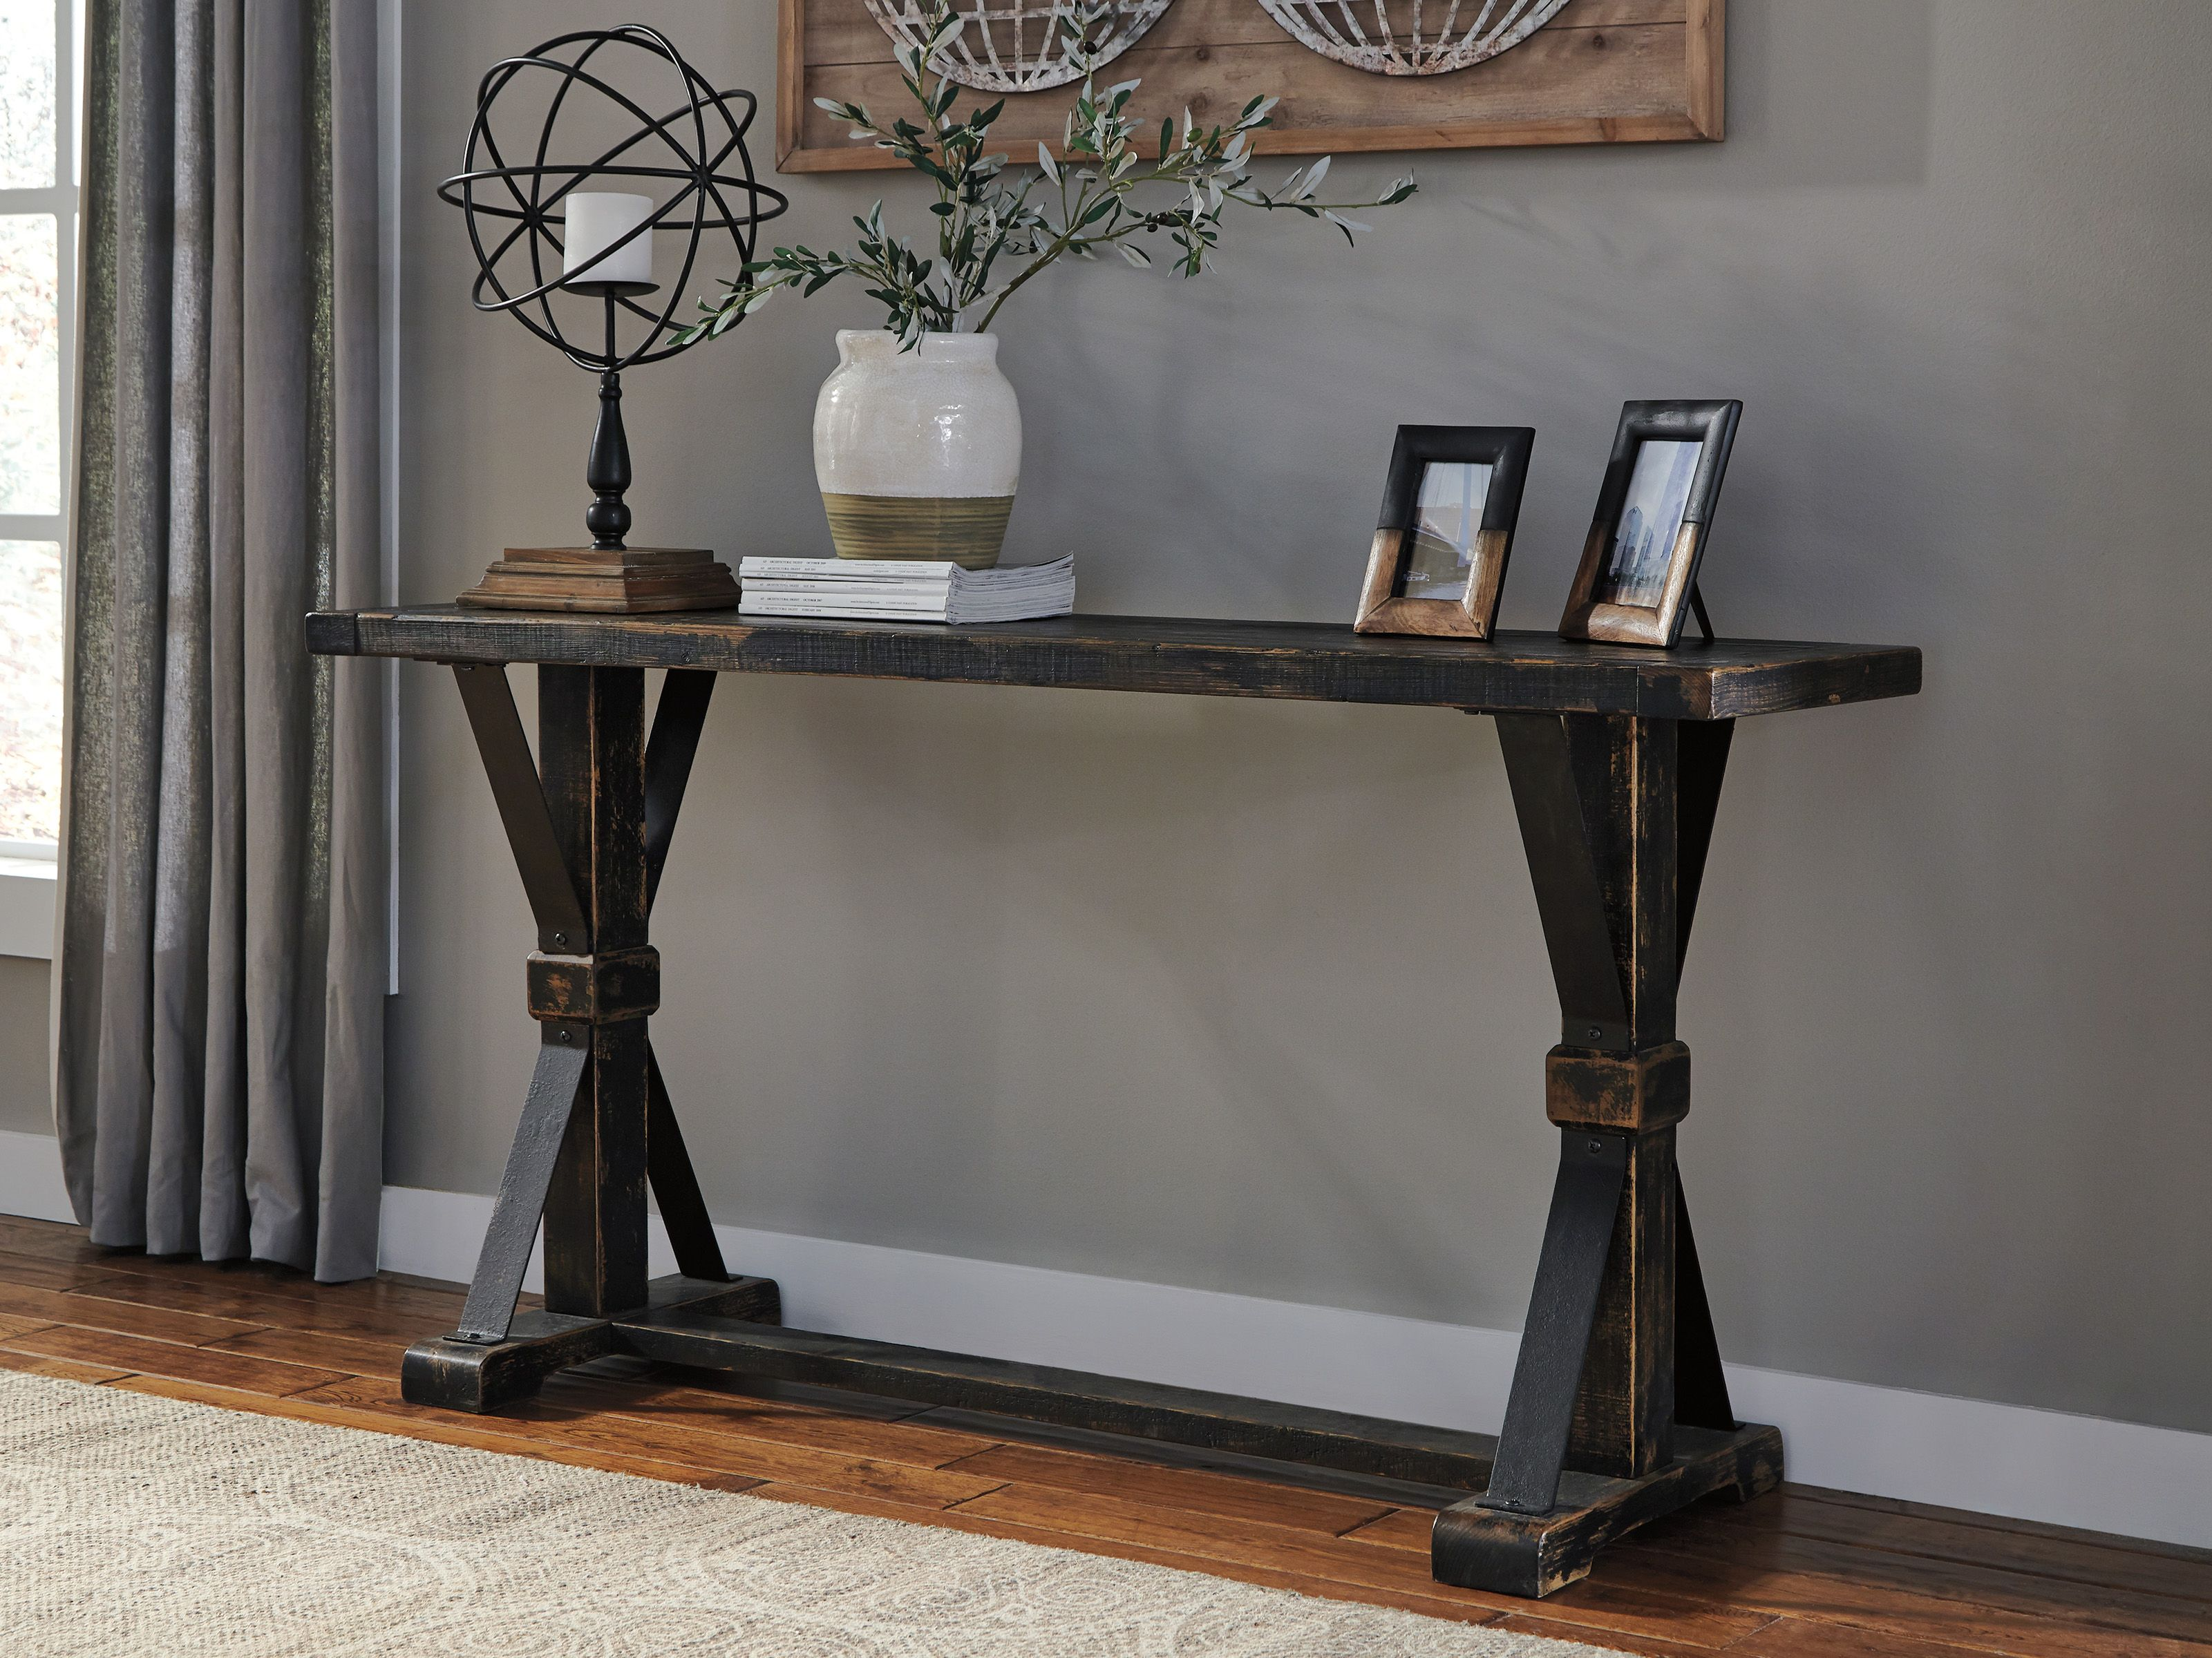 Beckendorf T096 4 By Ashley Sofa Table Rustic Console Tables Sofa Table Decor Black Console Table